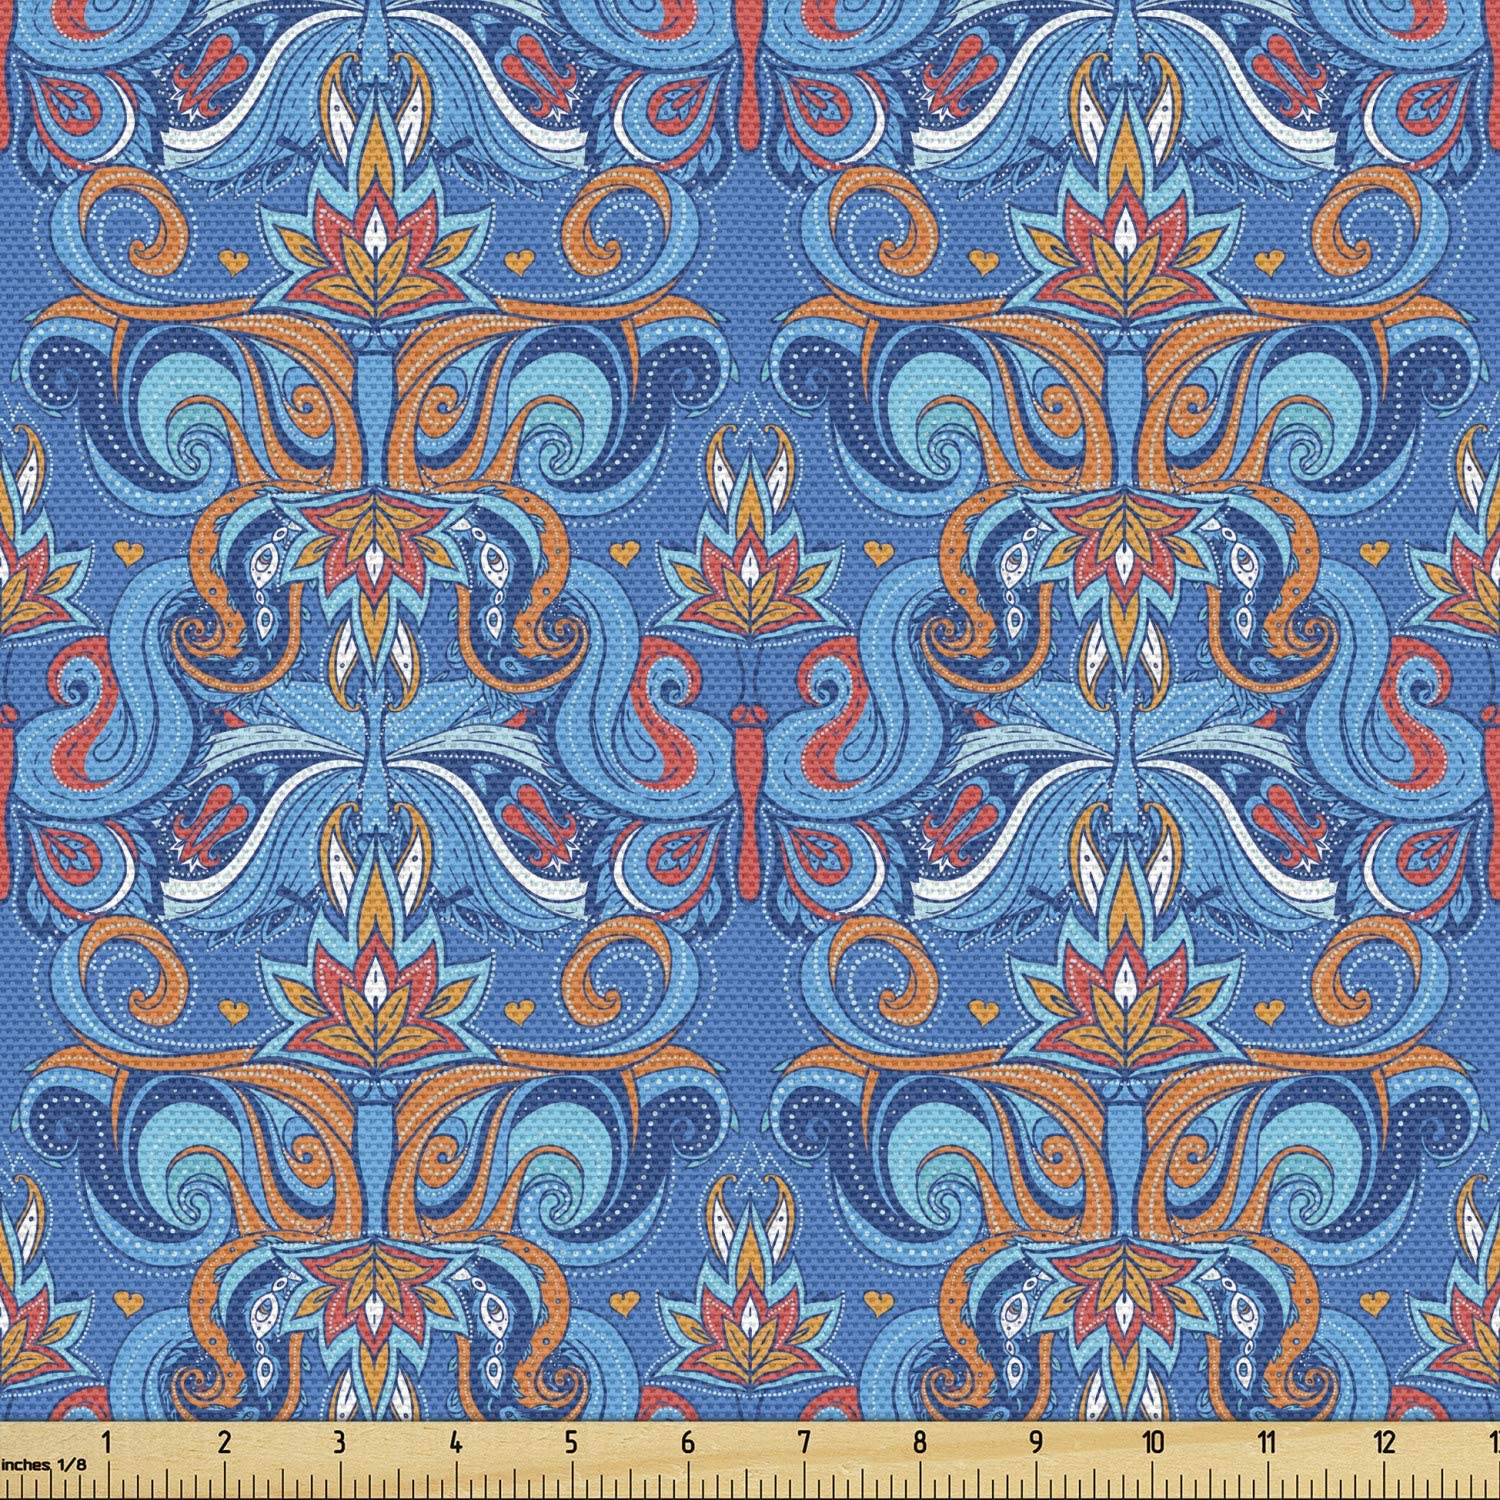 Ambesonne Blue Fabric by The Yard, Abstract Floral Pattern with Paisley Influences Ornate Curls Swirled Leaves, Decorative Fabric for Upholstery and Home Accents, 2 Yards, Orange Coral